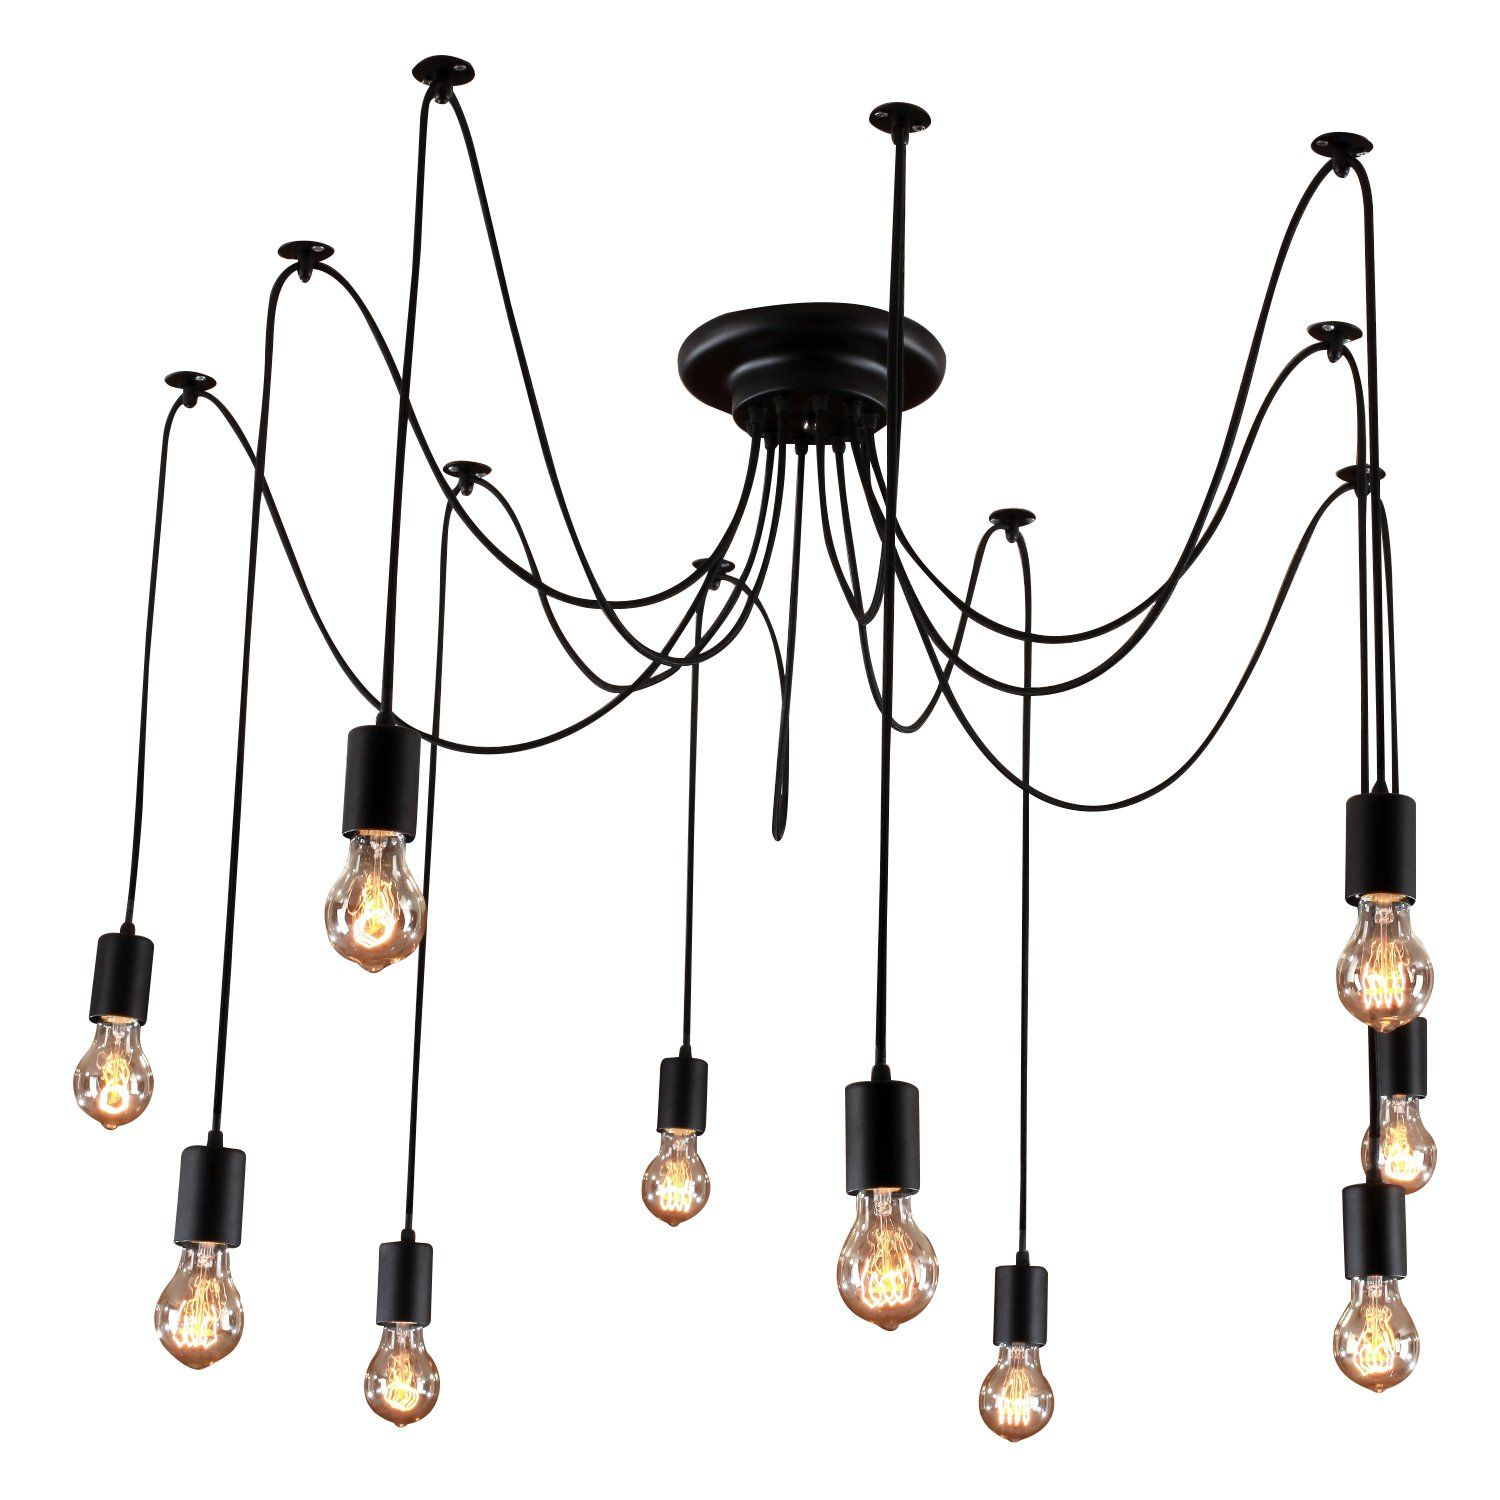 Explore Hanging Pendants During Chandelier And More